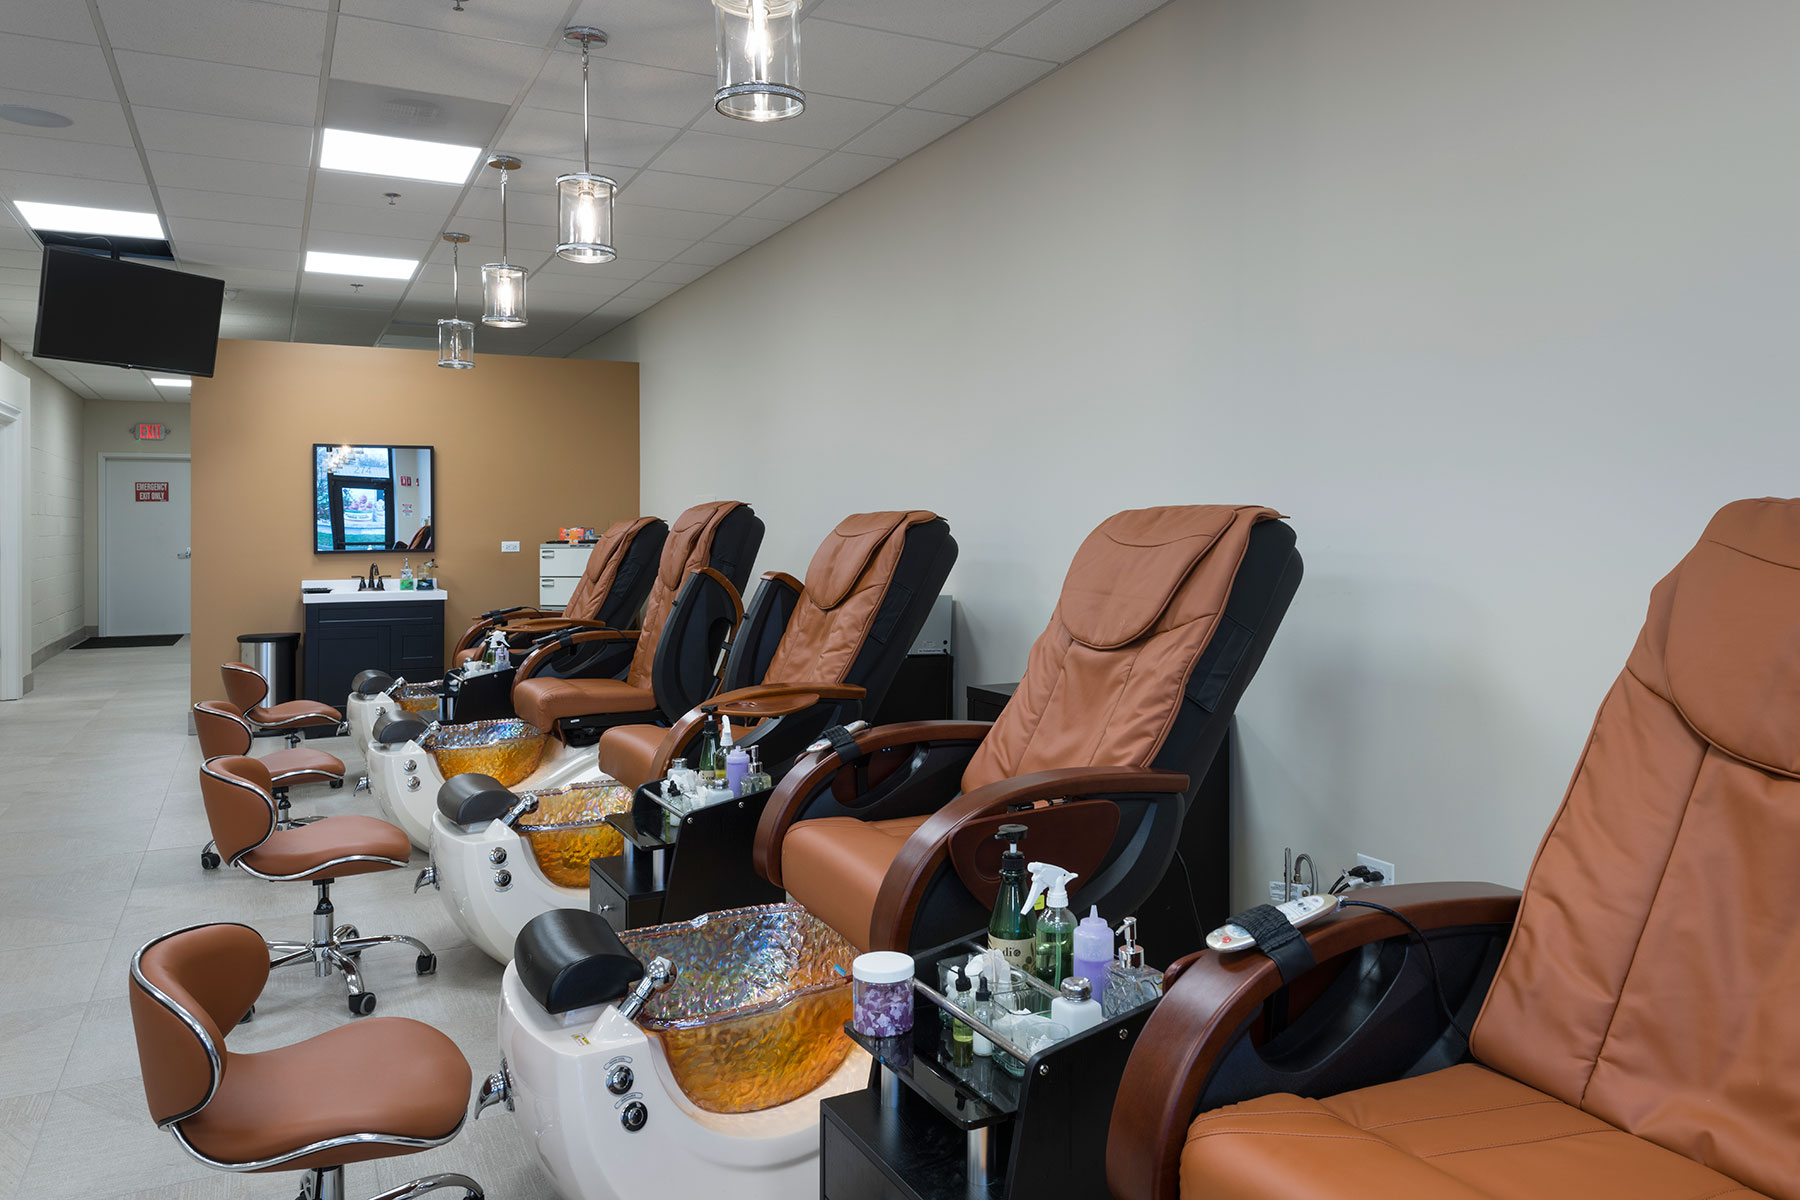 Salon Pedicure Chairs - Hollywood Trendz Hair & Spa Salon, Addison Custom Home. America's Custom Home Builders: New Construction, Remodeling, Restoration Services. Residential and Commercial.